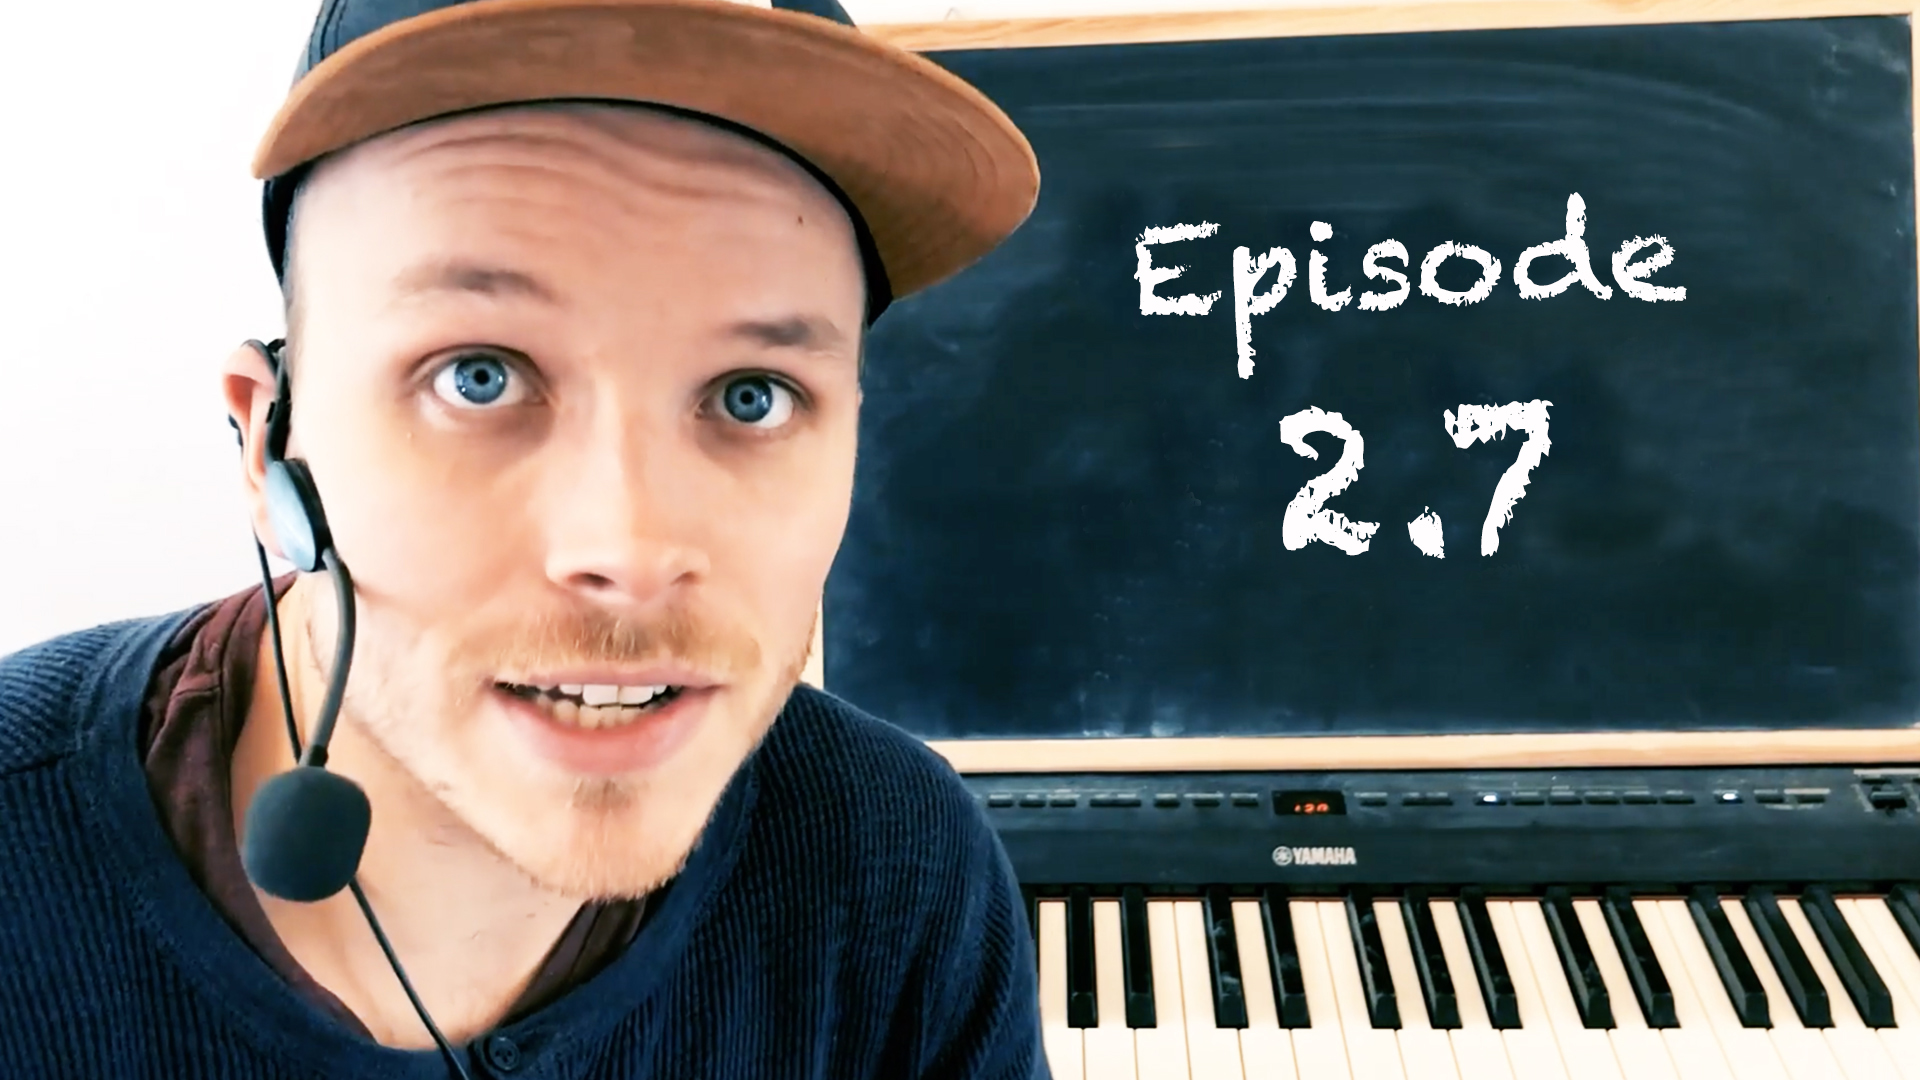 Ep 2. 7 Sing & Play Piano